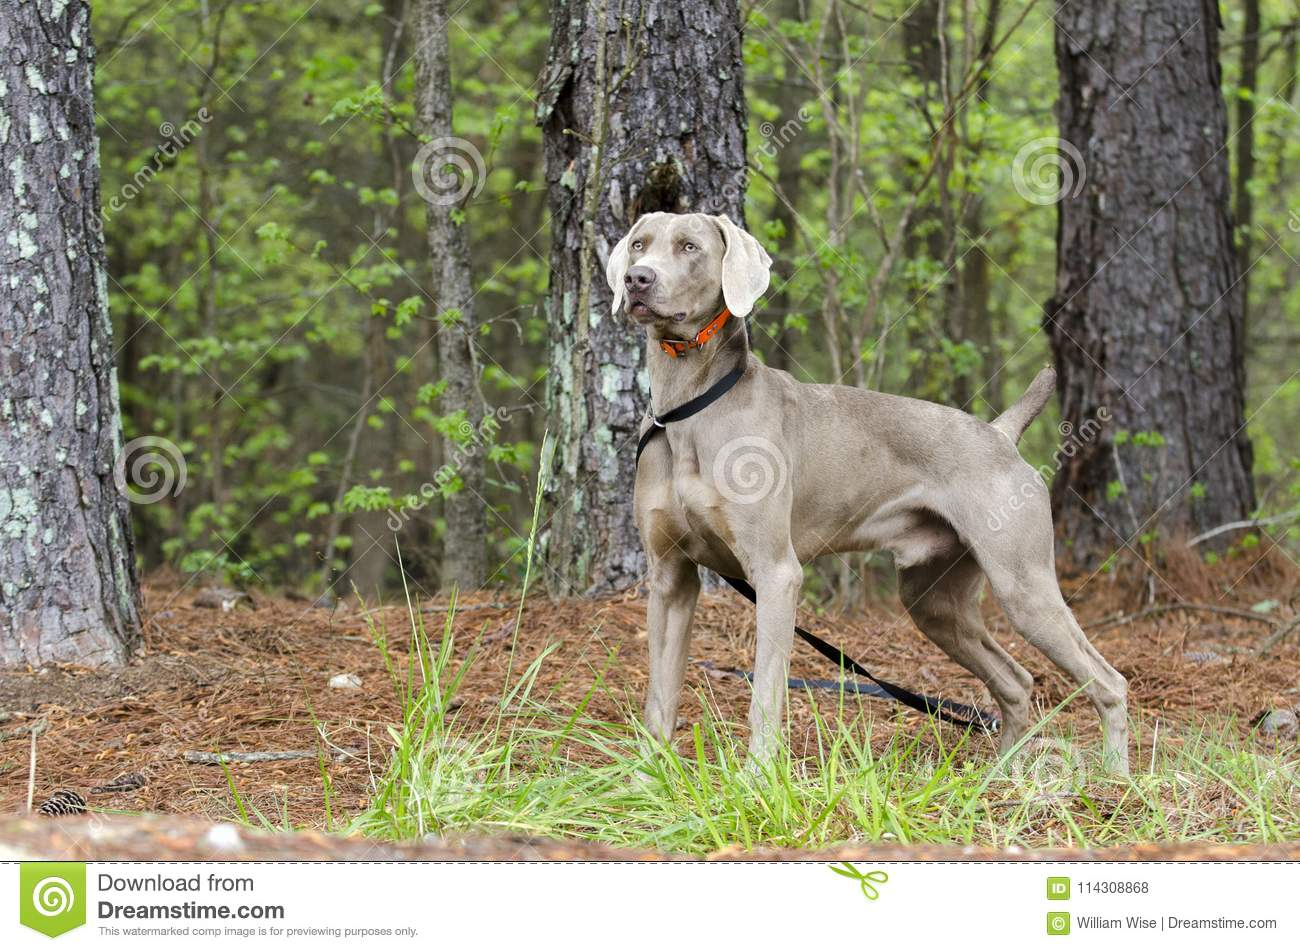 Weimaraner Gun Dog, Pet Adoption Photo, Monroe Georgia USA